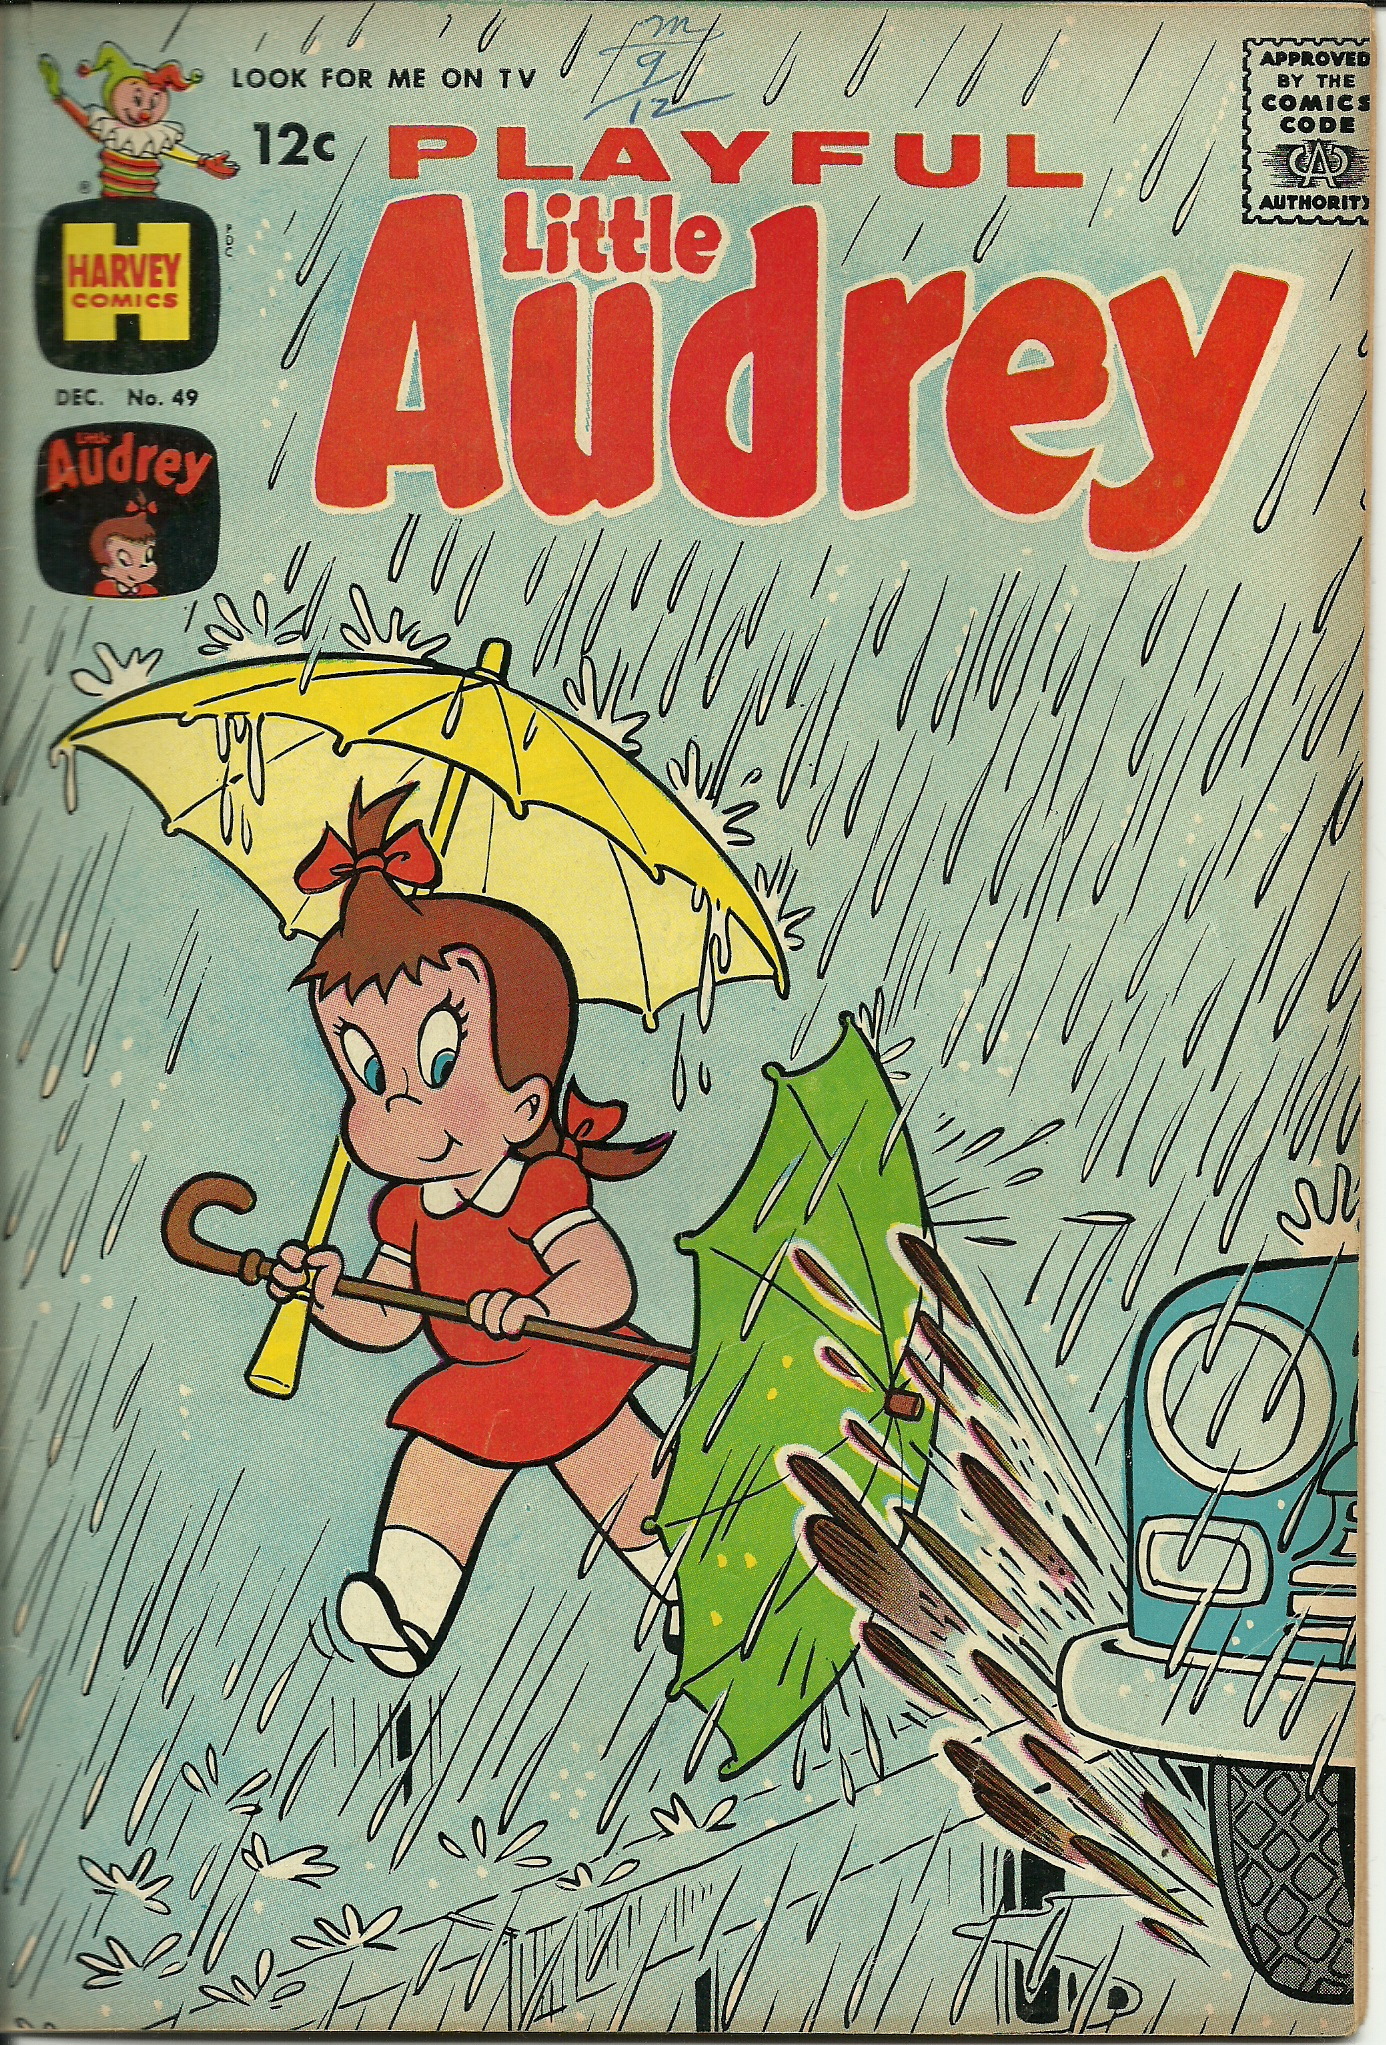 Playful Little Audrey–Vol. 1, No. 49–December 1963. In good ...